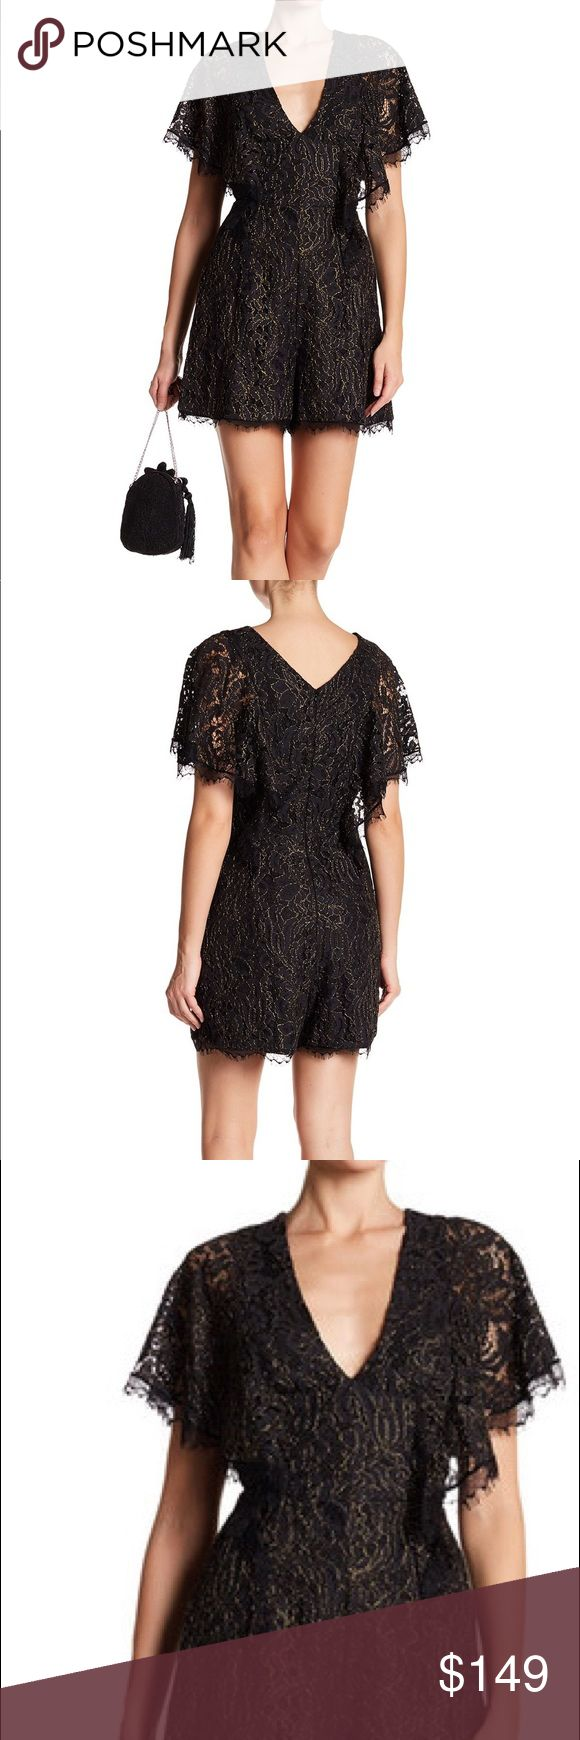 🆕Dress The Population Raven Lace Romper Black NWT Raven Lace Romper $219.00 Description Additional Information Approx. 33 1/2″ length Cape-like sleeves Metallic gold threading Zipper at center back Lined Dry clean 100% polyester Made in USA with imported fabric Dress the Population Other